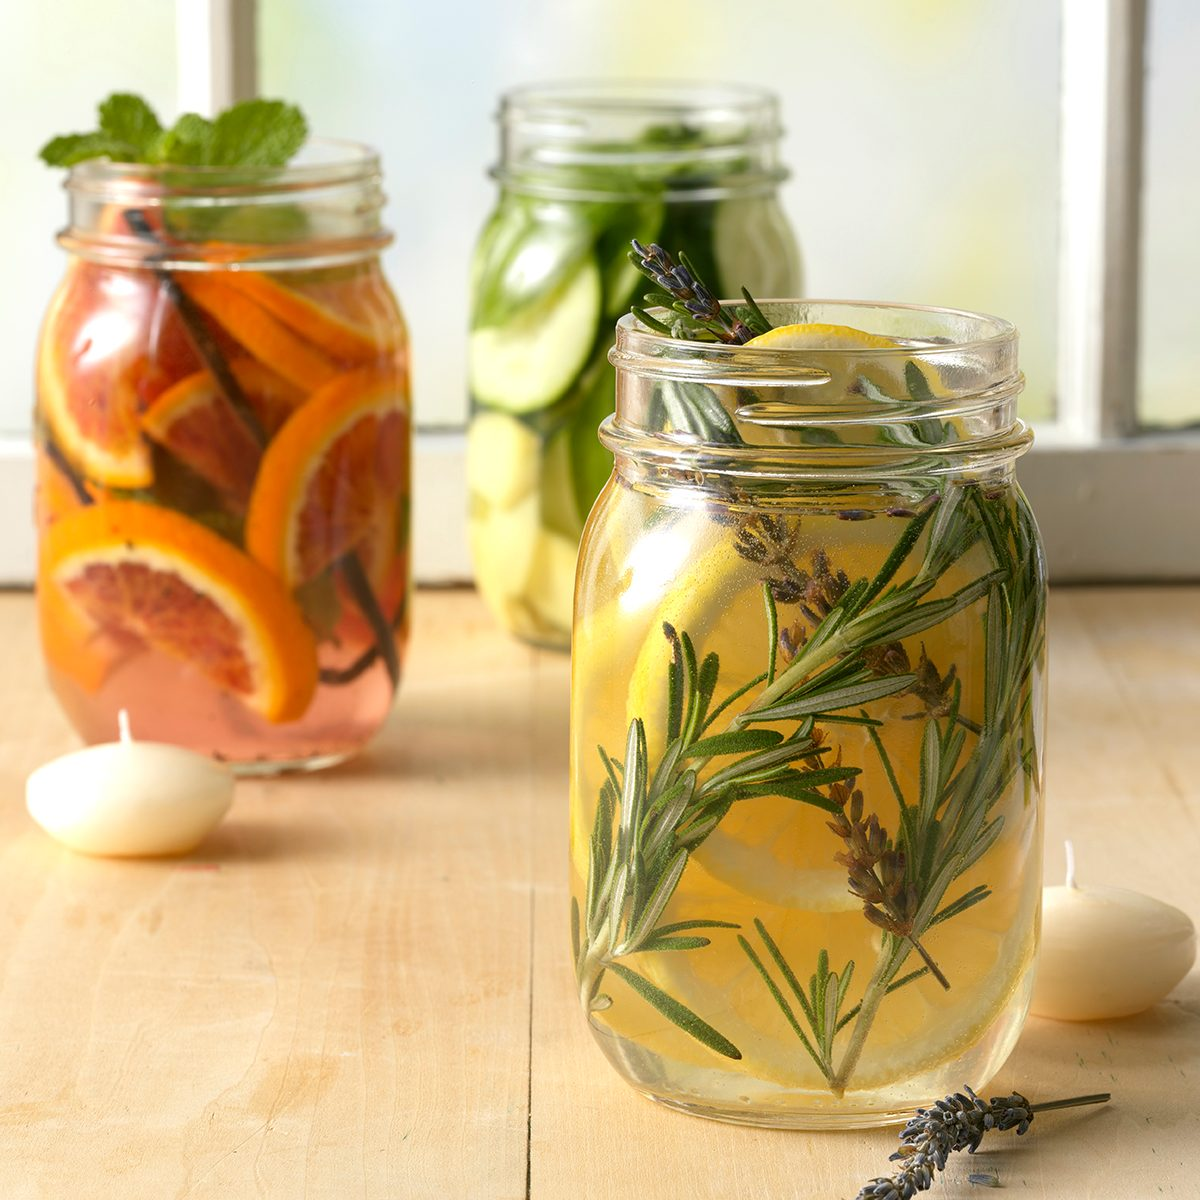 Diy Home Fragrance Ideas You Can Make Using Common Ingredients